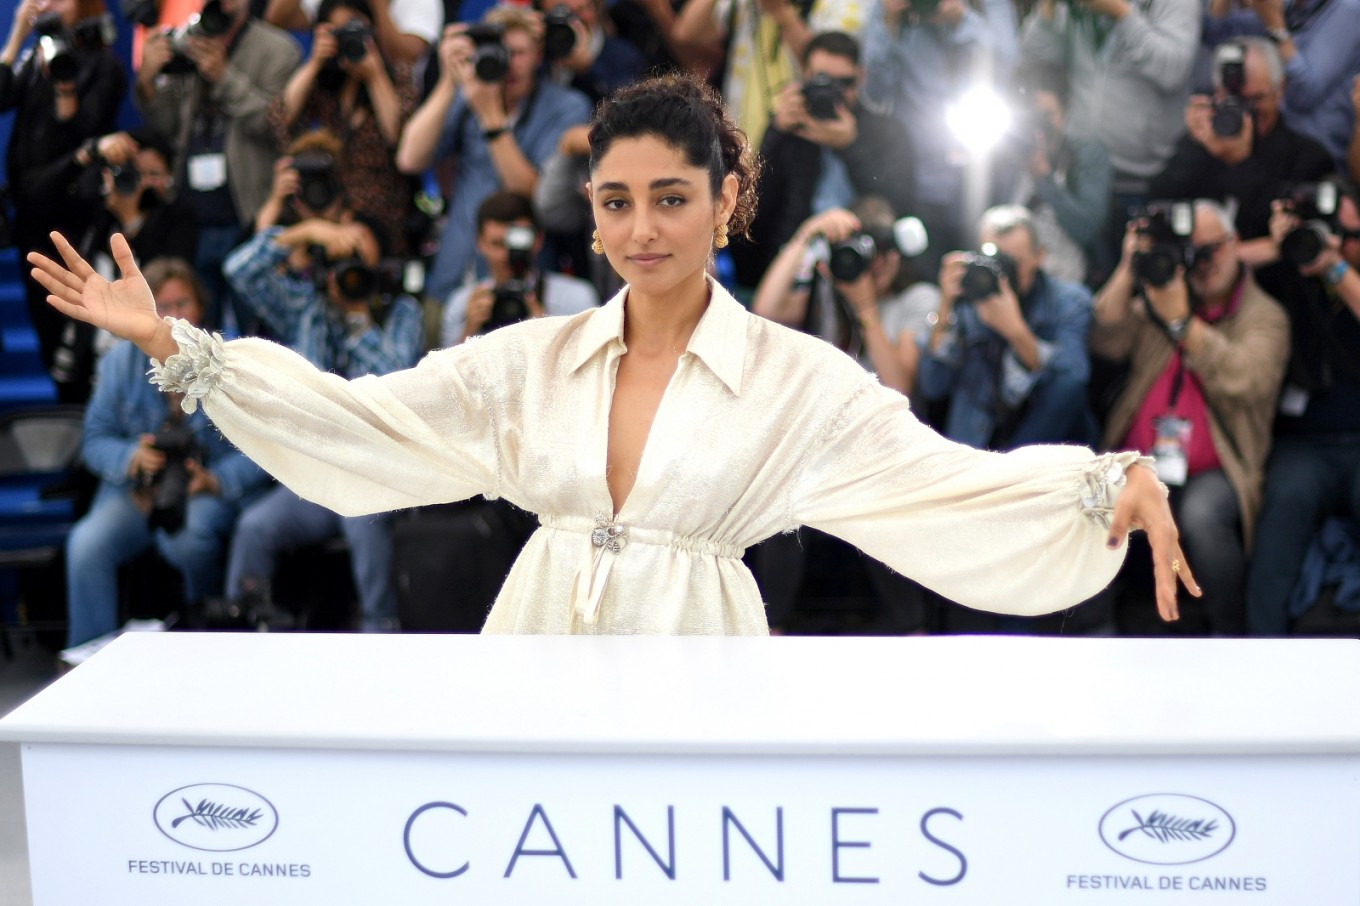 Kurdish women fighters film sparks furious Cannes row